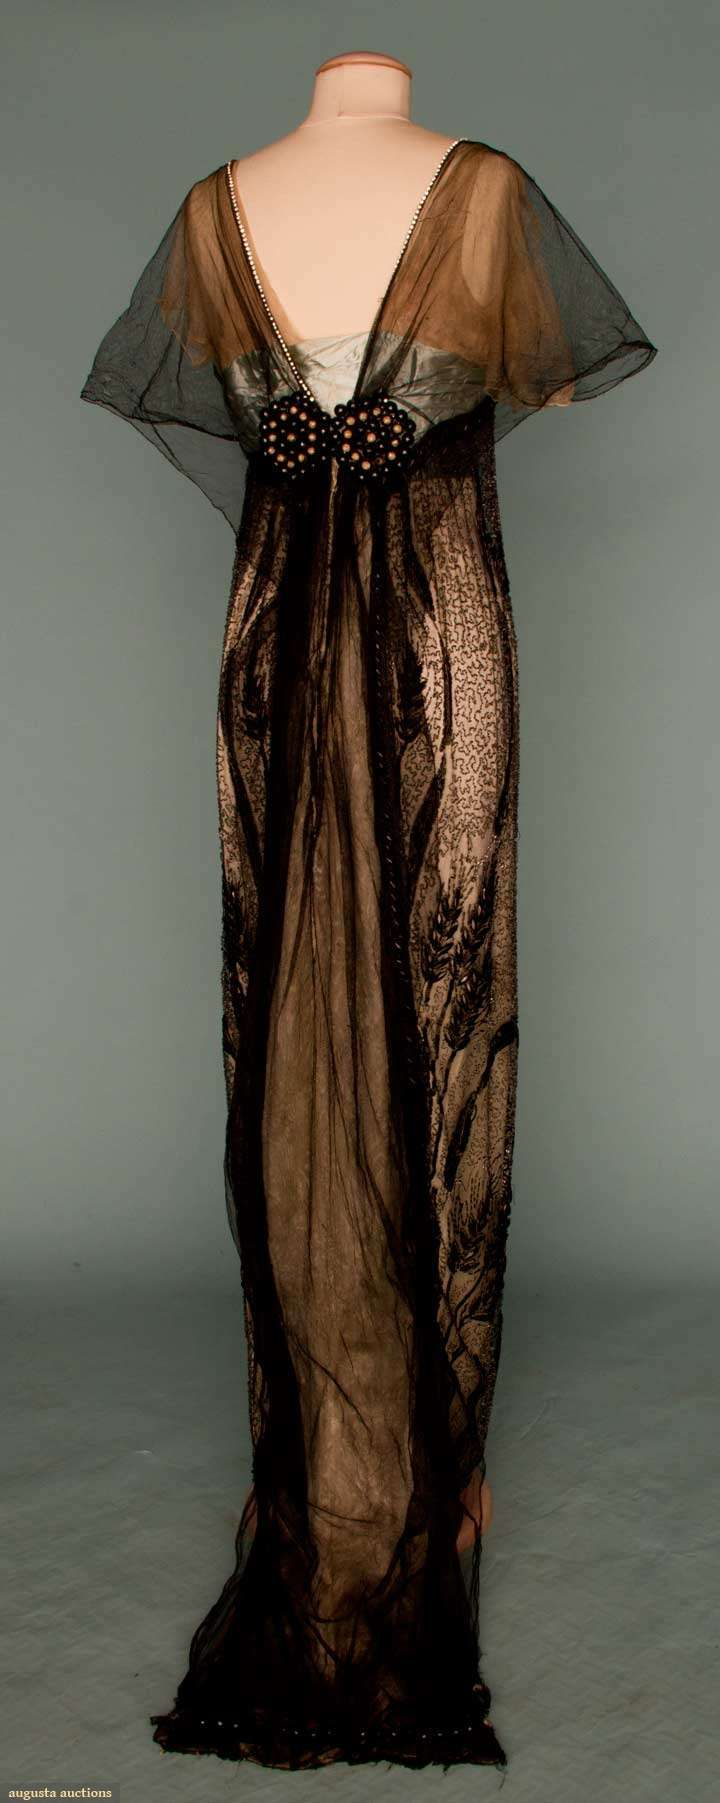 "WORTH EMPIRE EVENING GOWN, PARIS, c. 1912  Pale blue silk charmeuse covered w/ black silk tulle, sides embroidered in vermichelli pattern crystal beads, pattern interrupted w/ black bugle beads in swirling bands & sheaves of wheat, 2 large black & white jeweled rounds at CB, small square train, B 32"", H 37"", L 57""-71"", white silk petersham w/ white woven label Paris Worth"", inked on back ""4709"", (scattered holes in black tulle, nude tulle undersleeves torn, minor bead loss)"